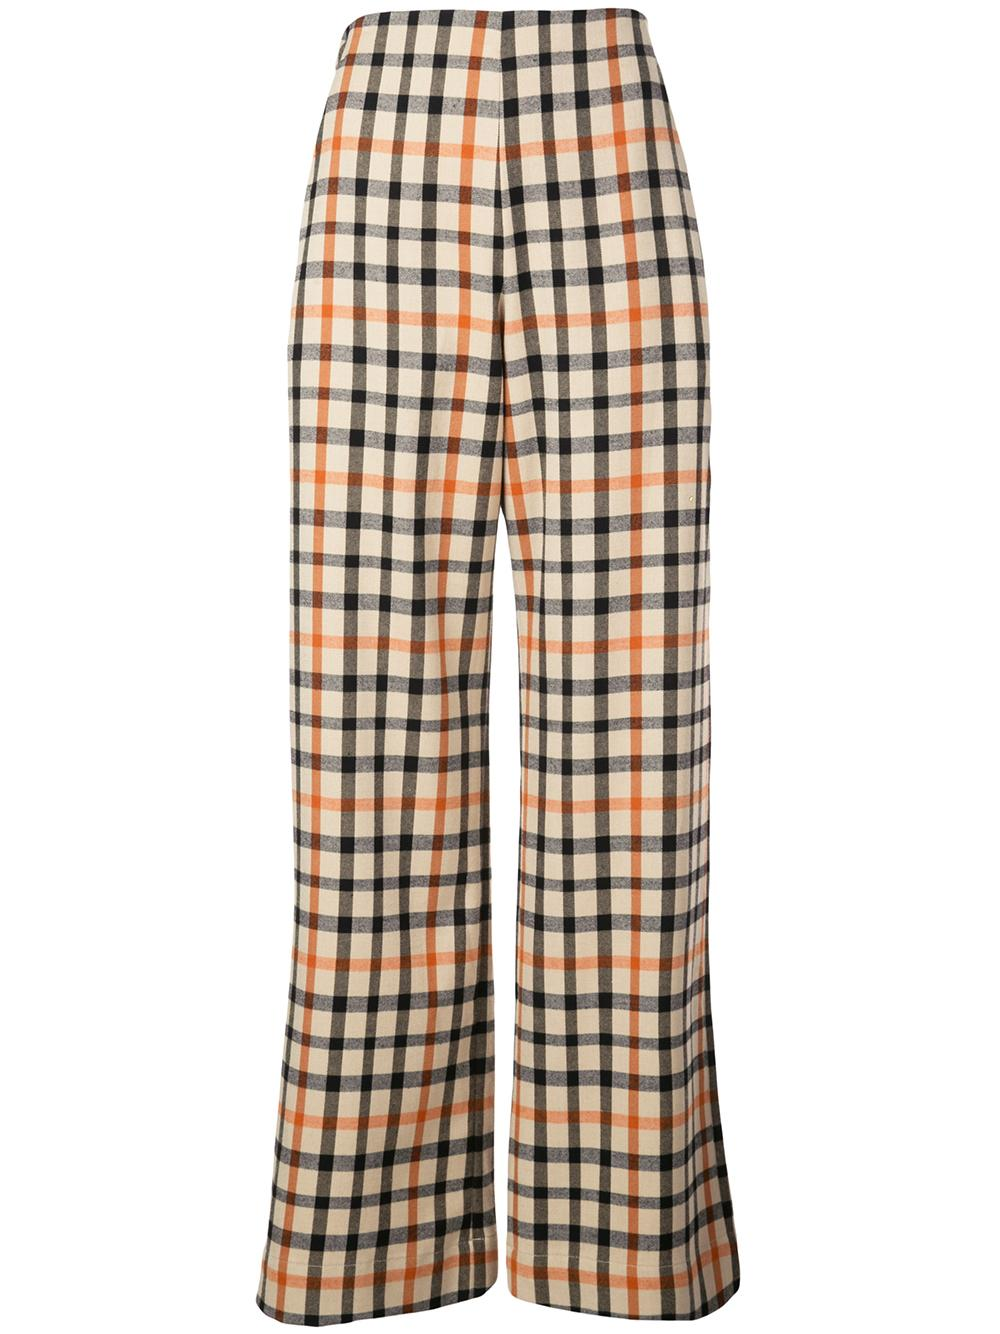 Nyo Flannel Check Print Pant Item # 20498